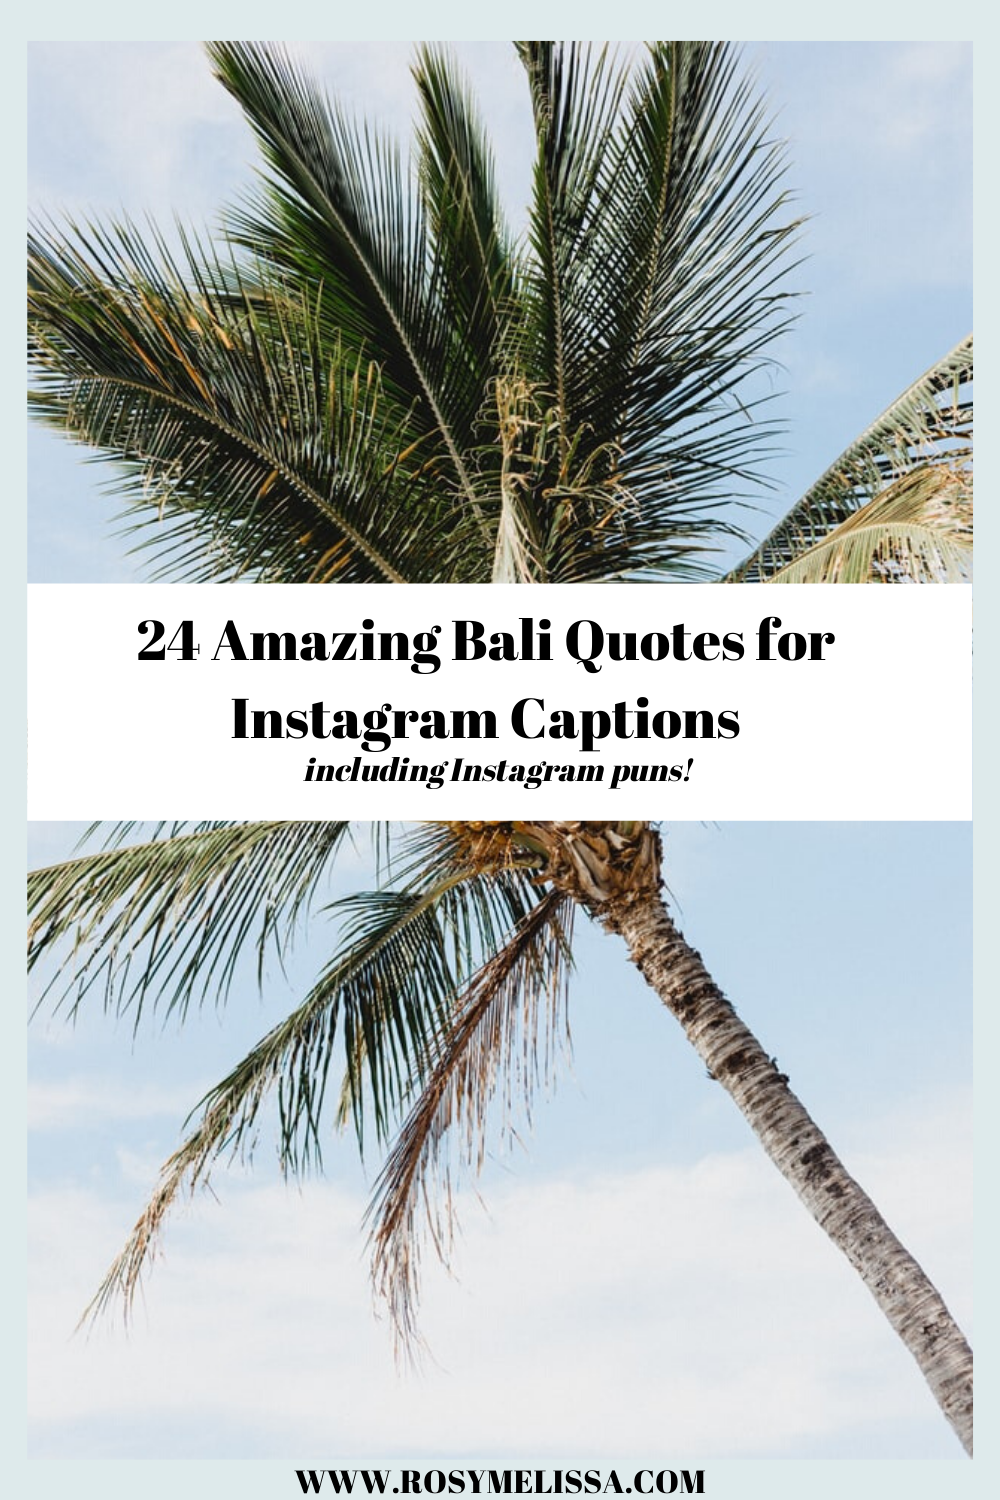 coconuts, island life, bali in indonesia, the perfect instagram captions, palmtrees, instagram puns, bali quotes, the best travel quotes, travel inspiration, 23 bali quotes and instagram captions